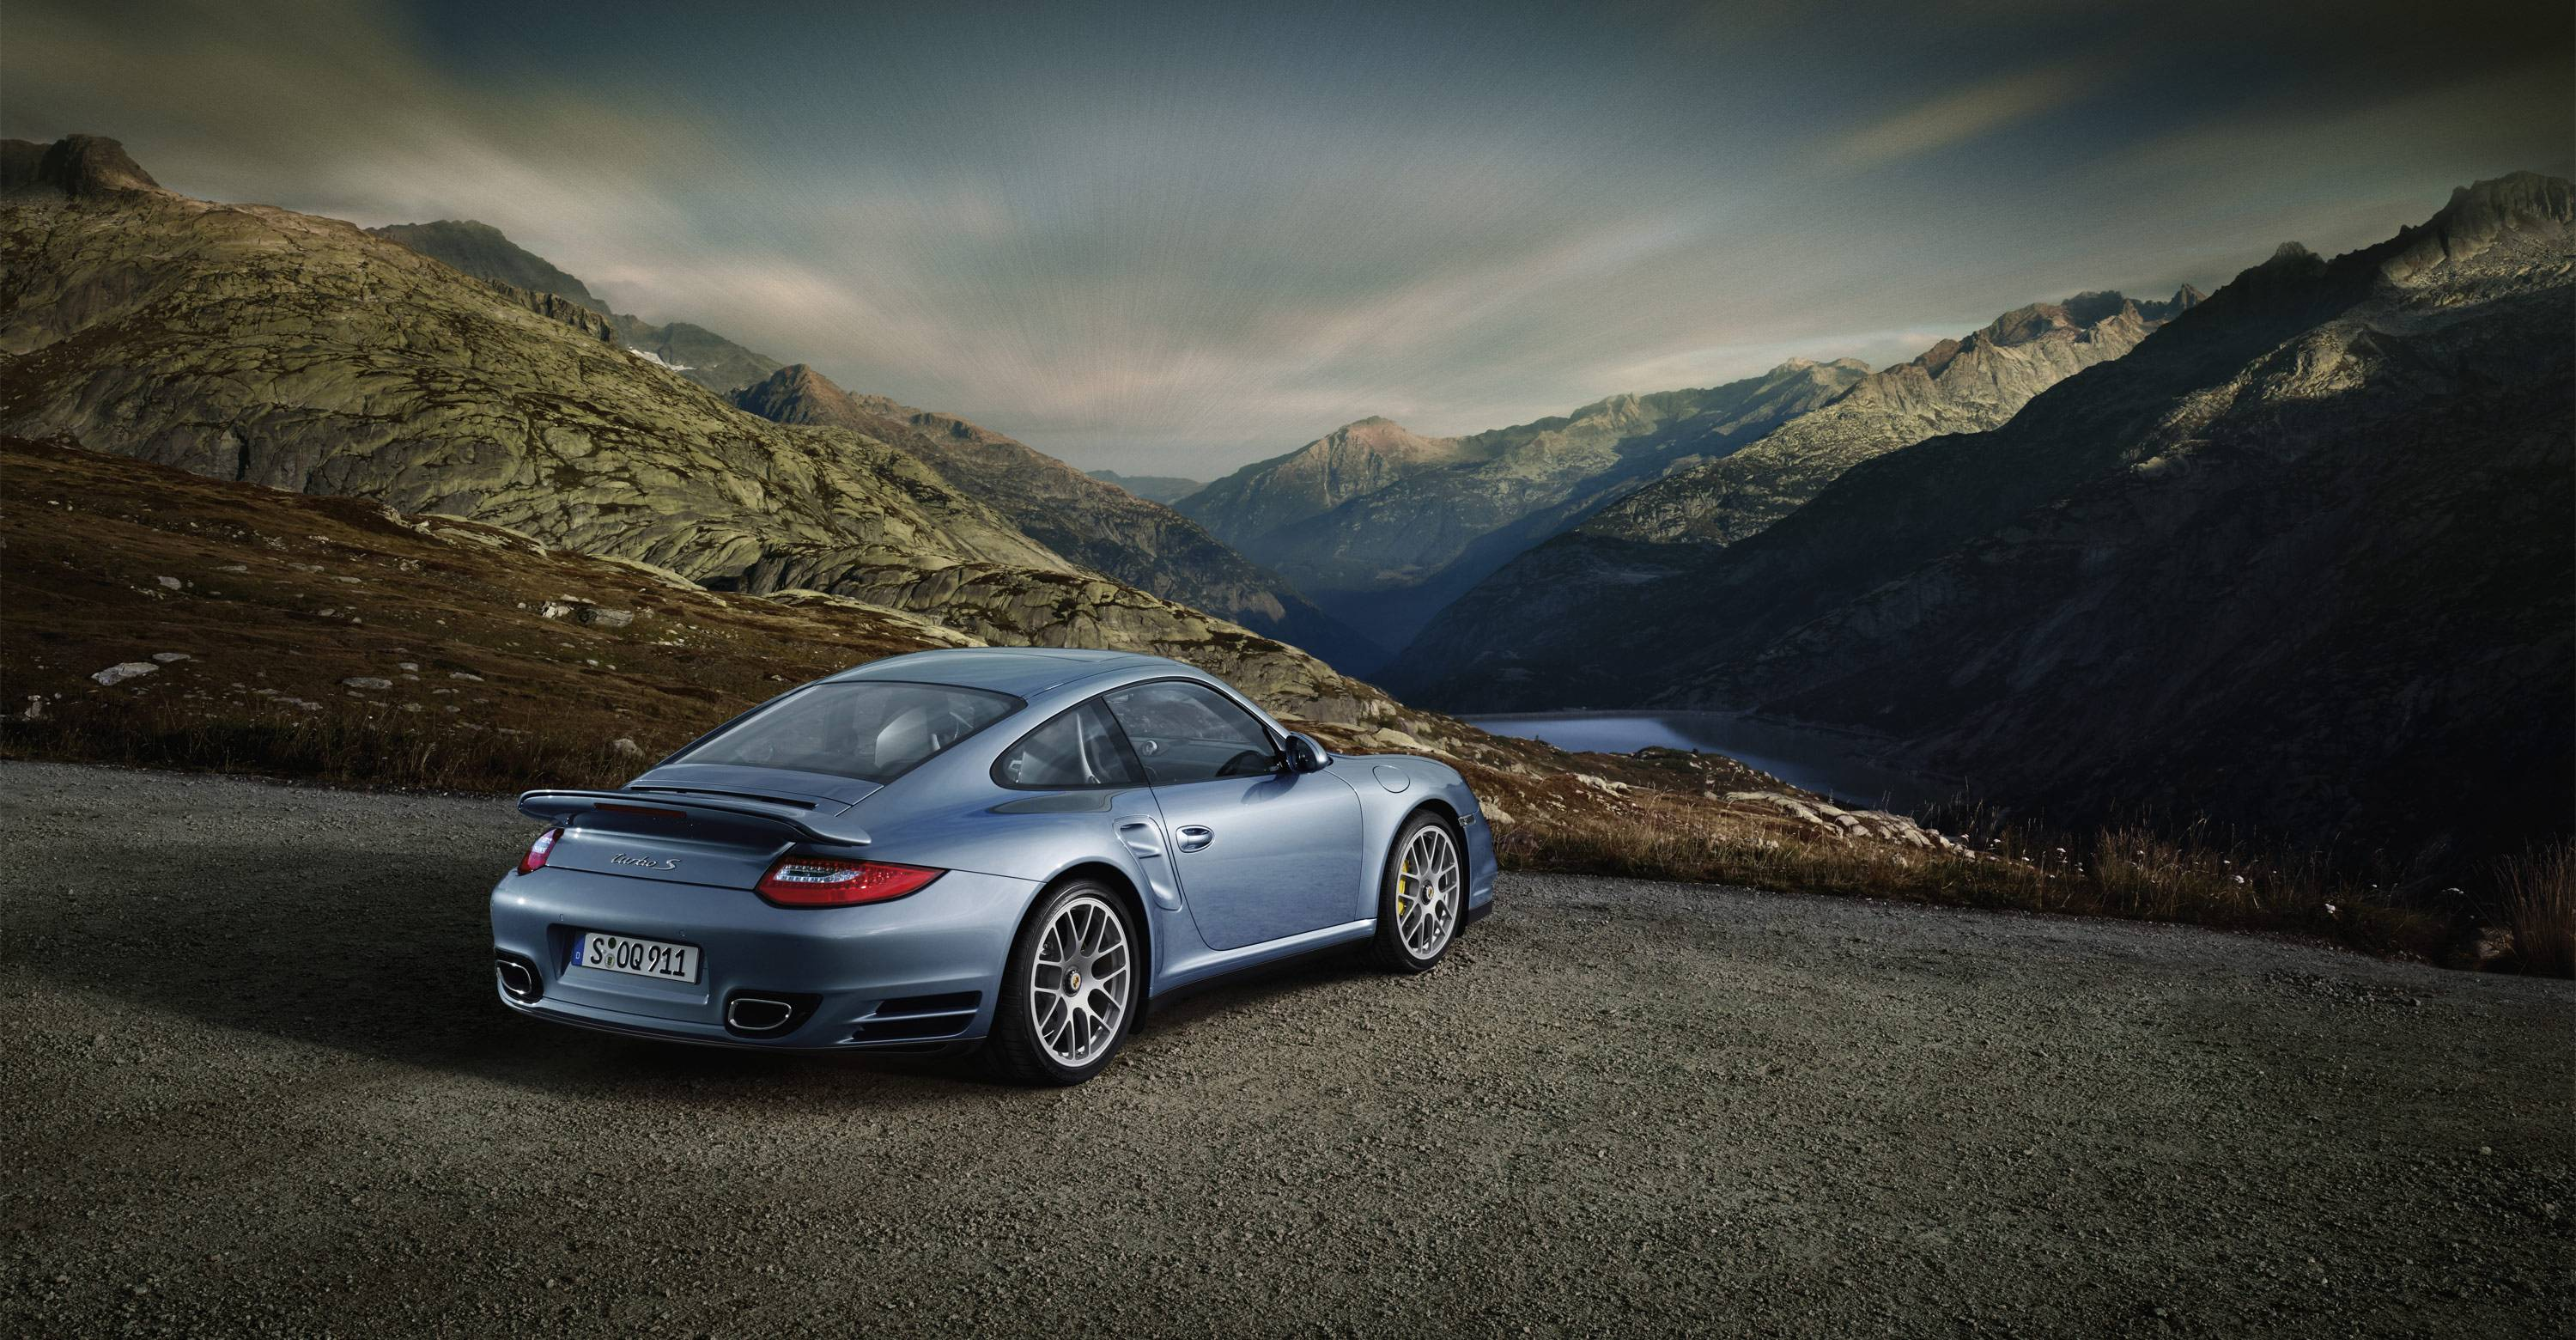 Porsche 911 Wallpapers - Wallpaper Cave